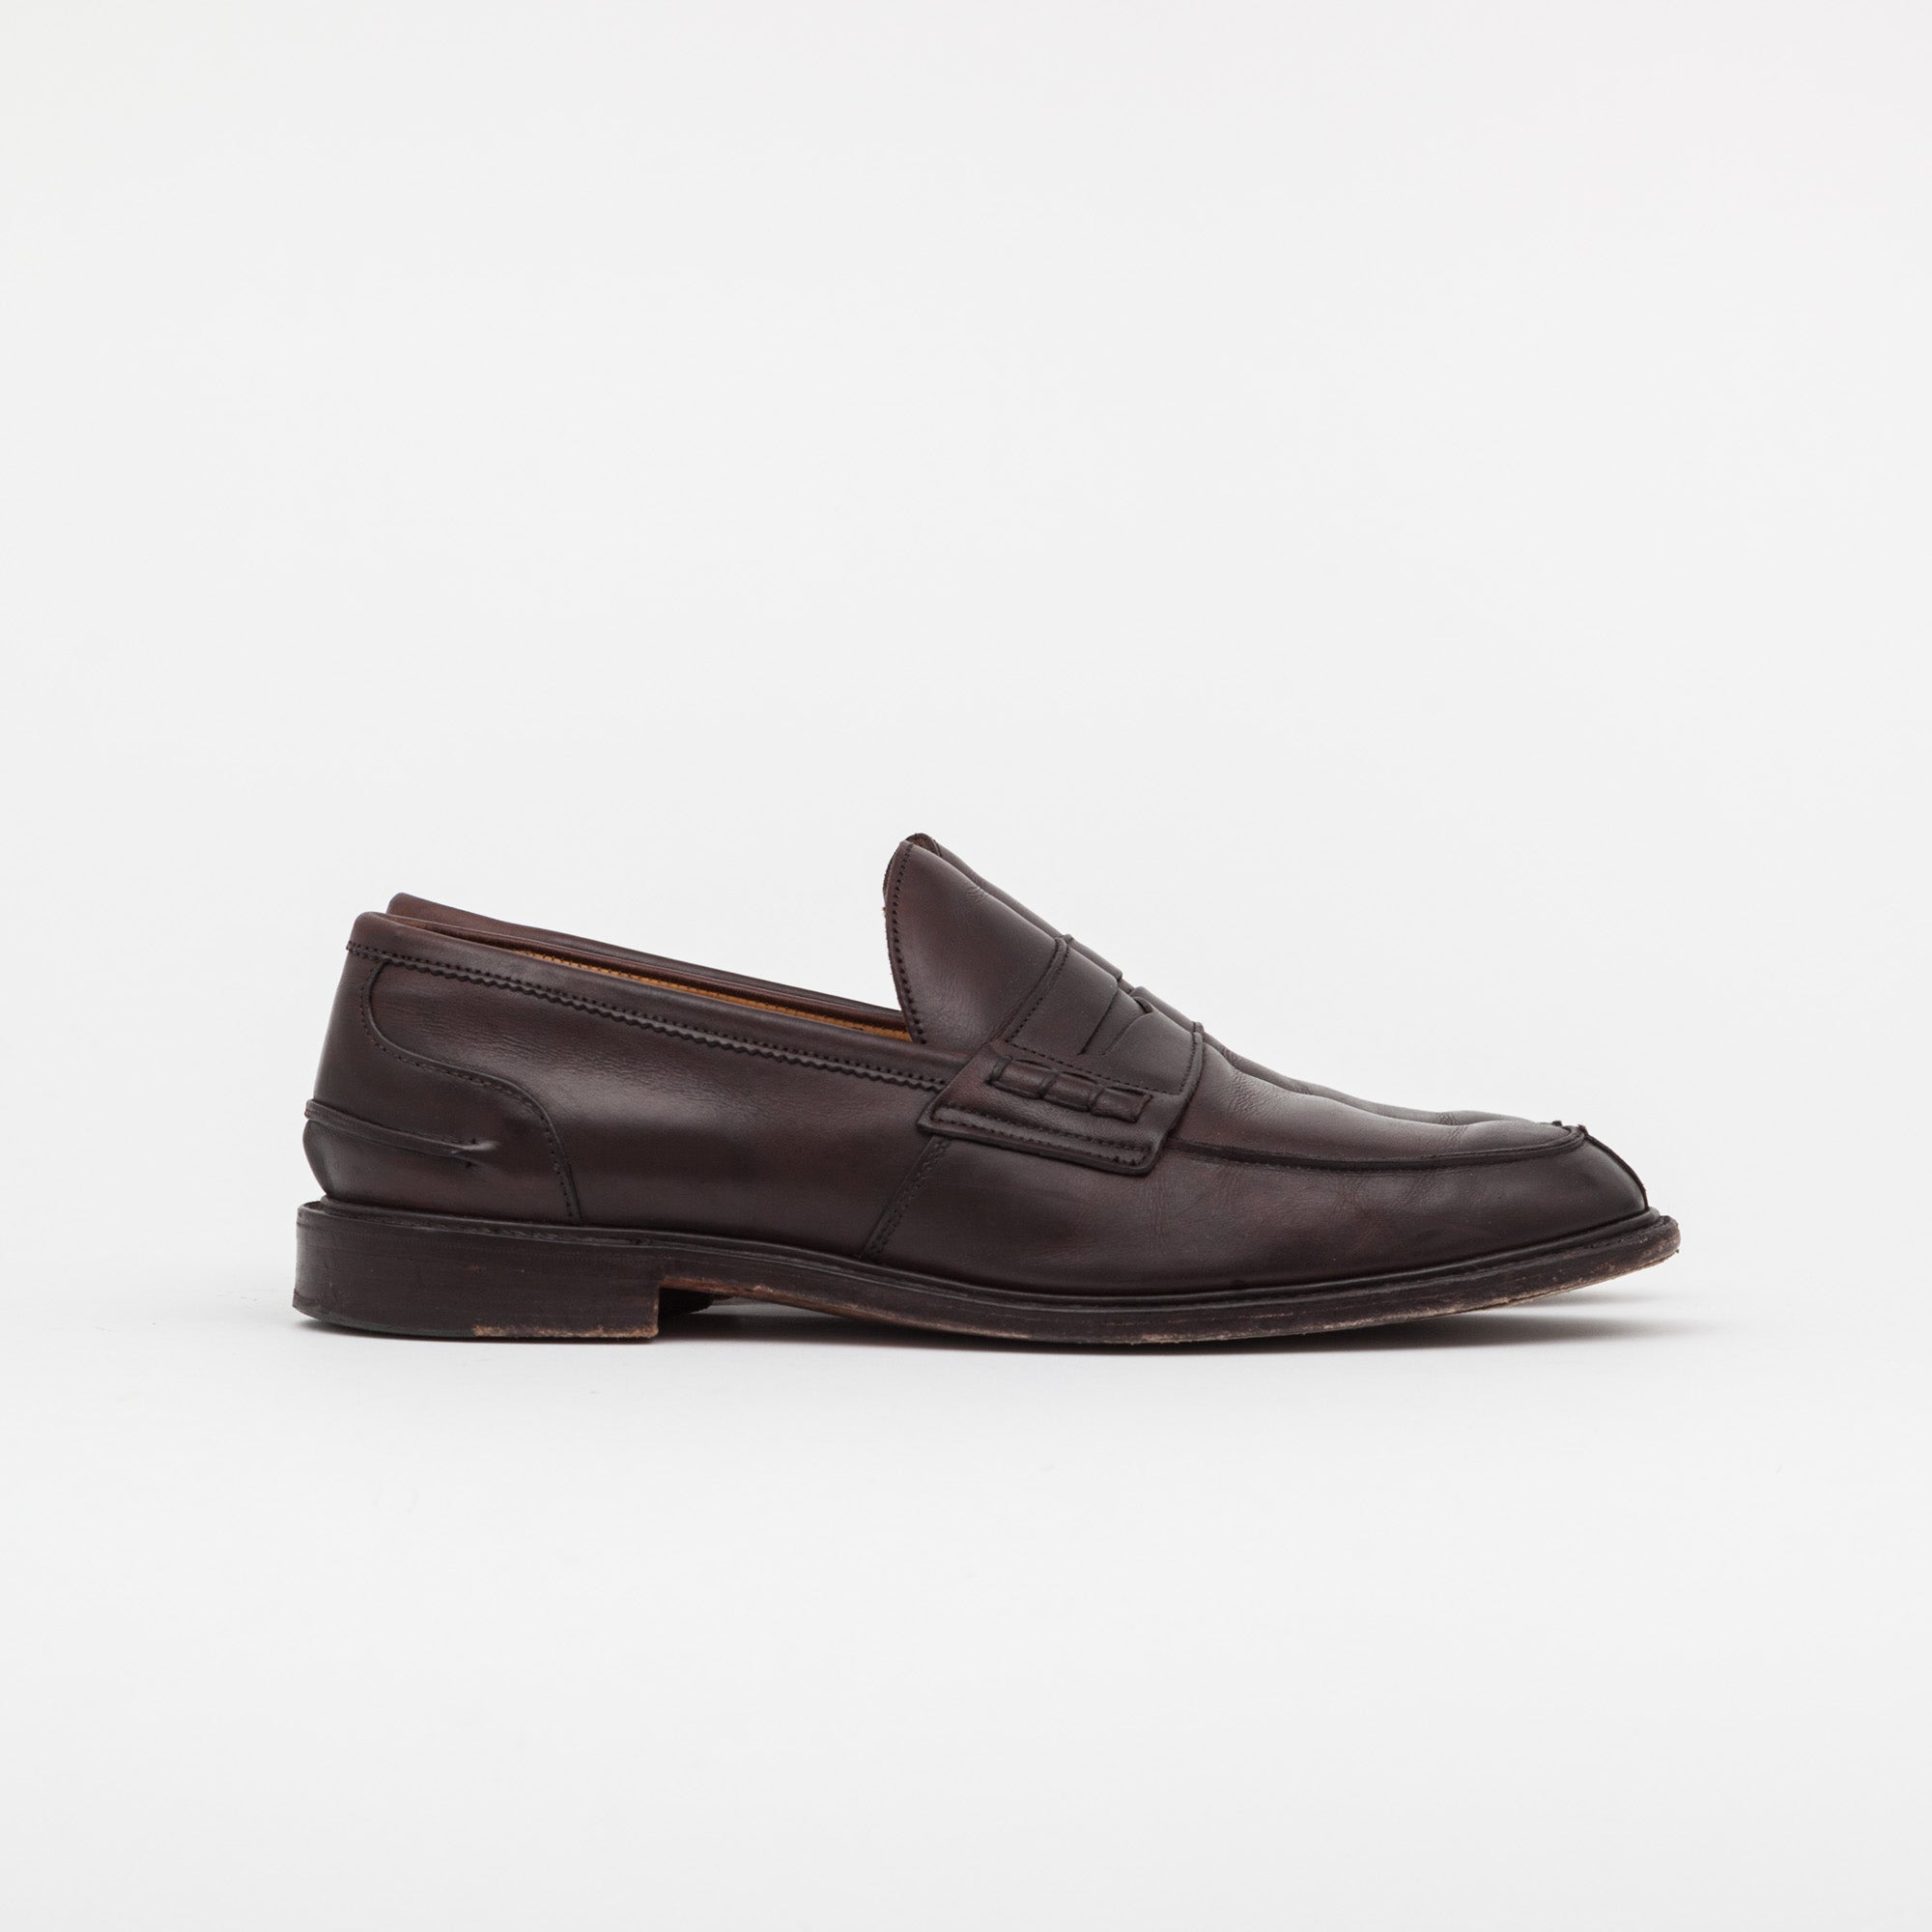 Tricker's Penny Loafer